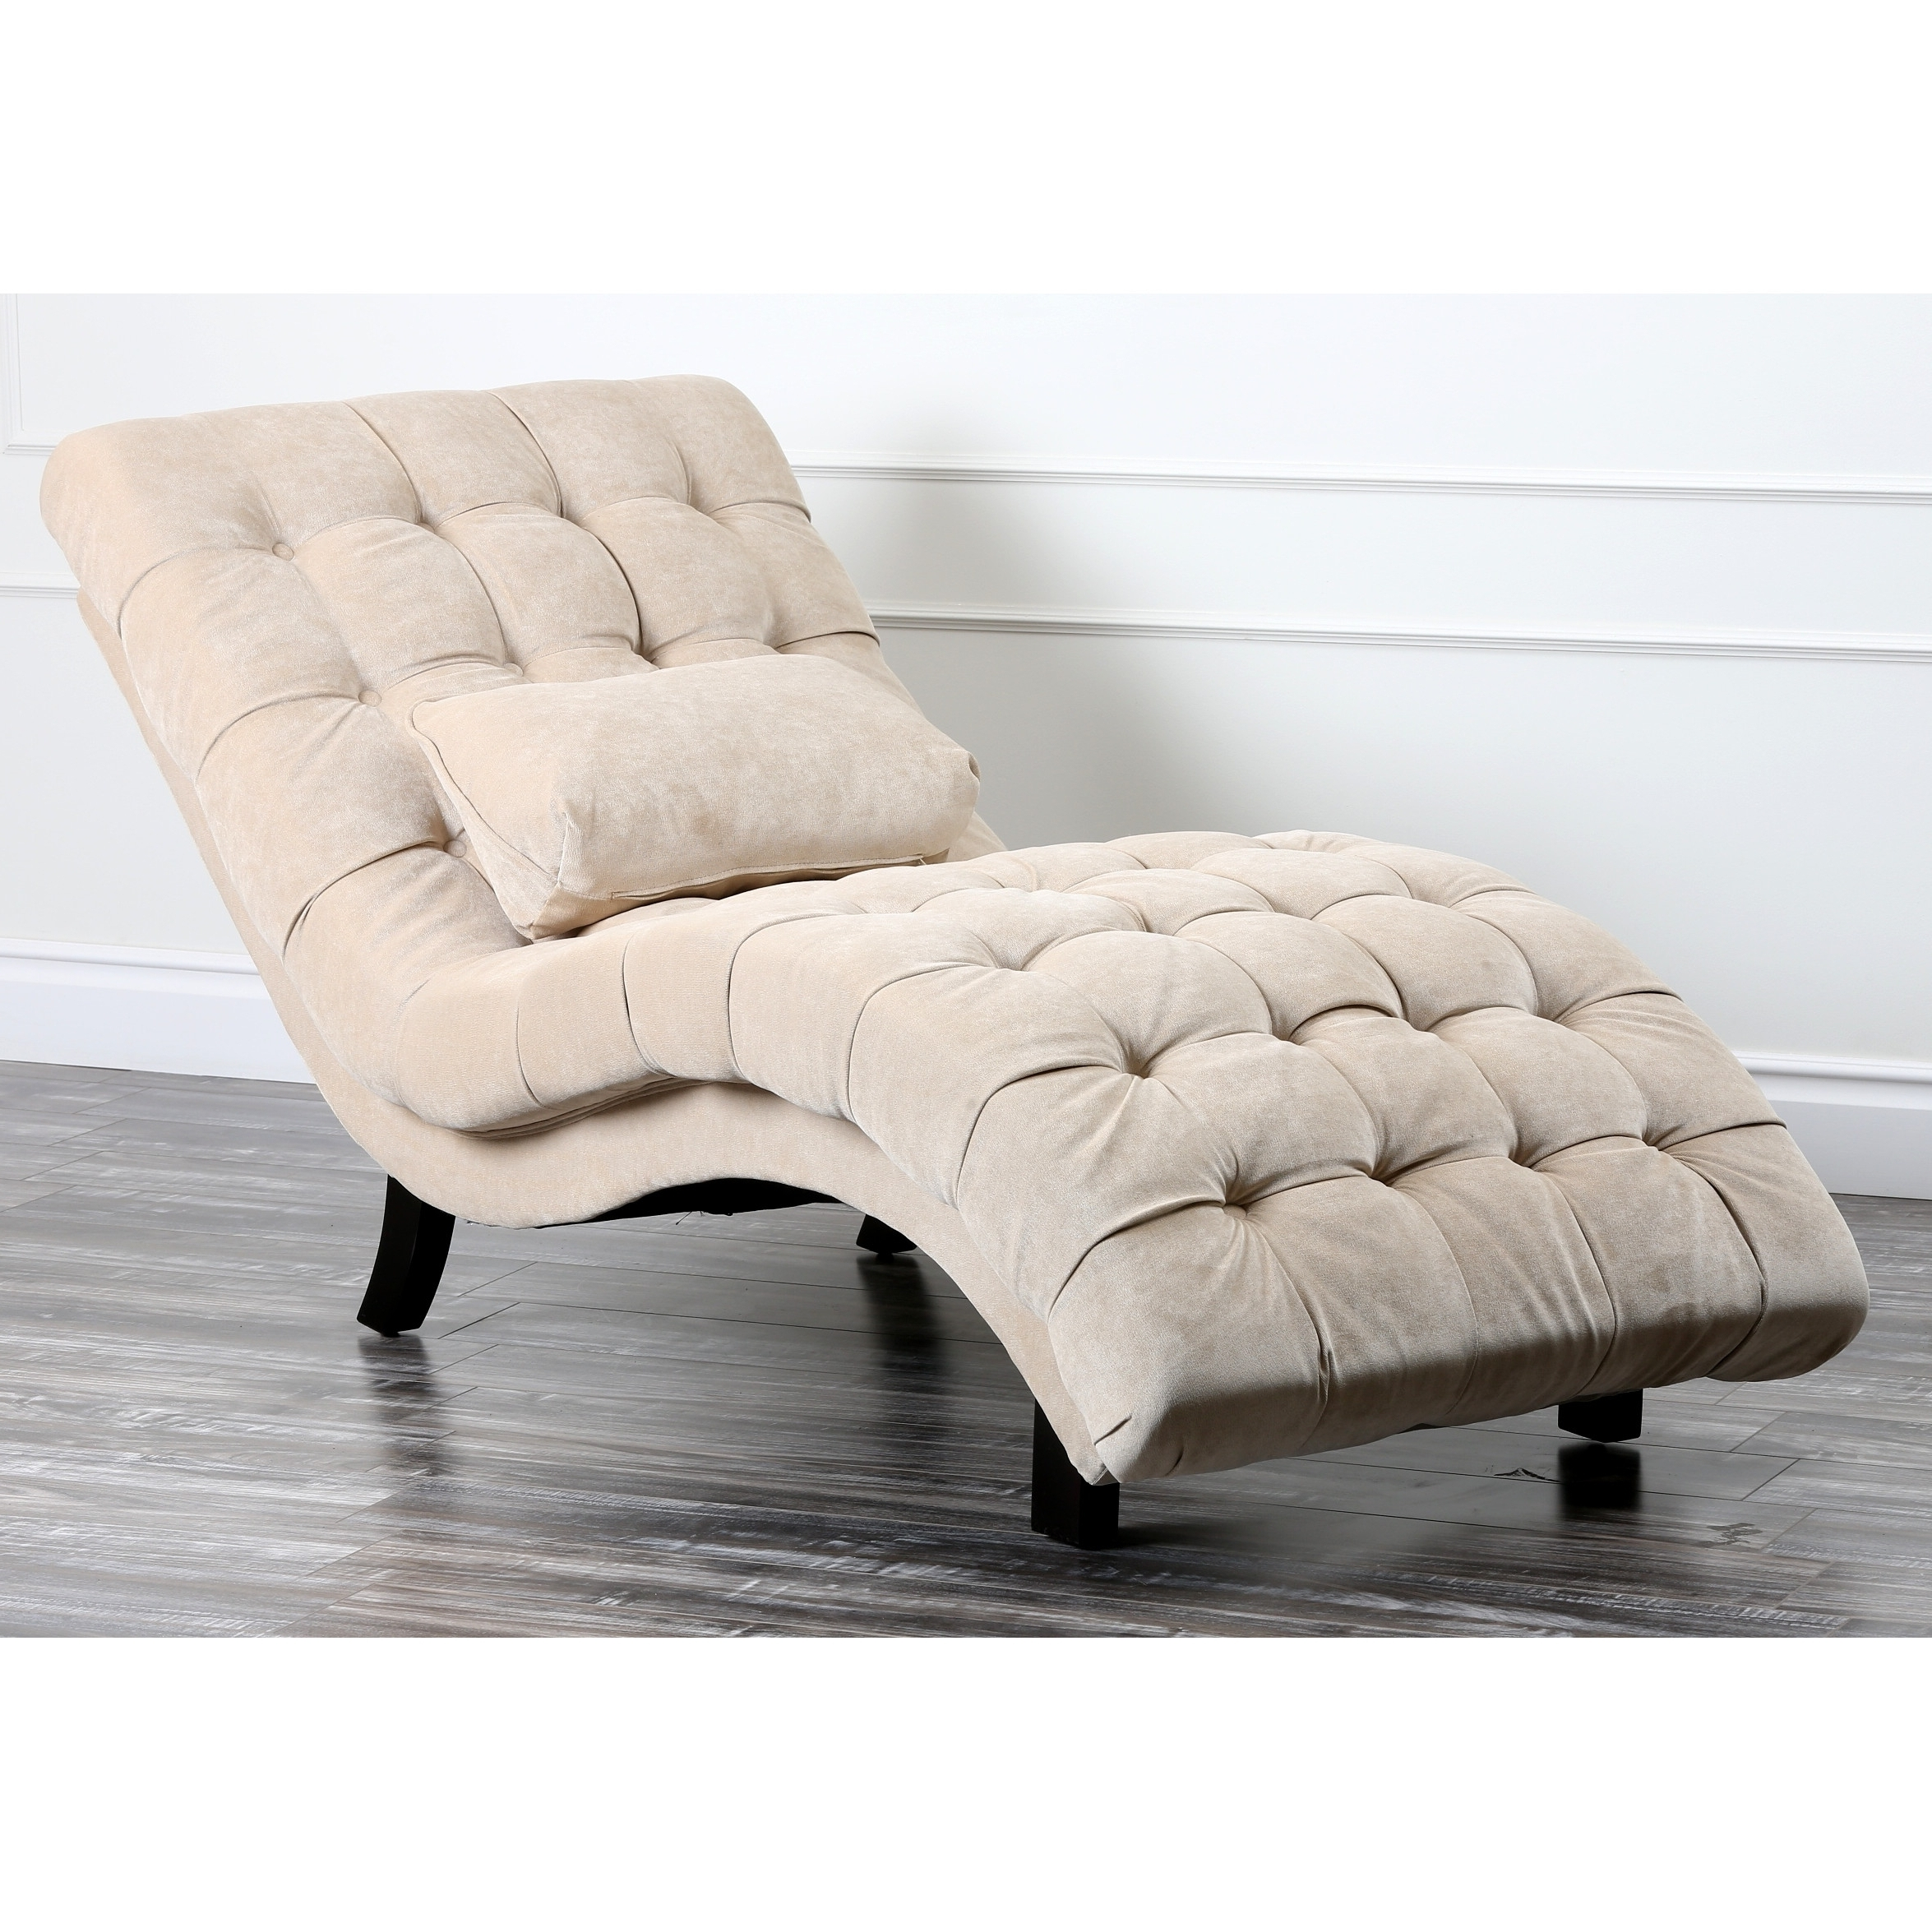 2018 Fabric Chaise Lounge Chairs • Lounge Chairs Ideas With Regard To Fabric Chaise Lounge Chairs (View 1 of 15)